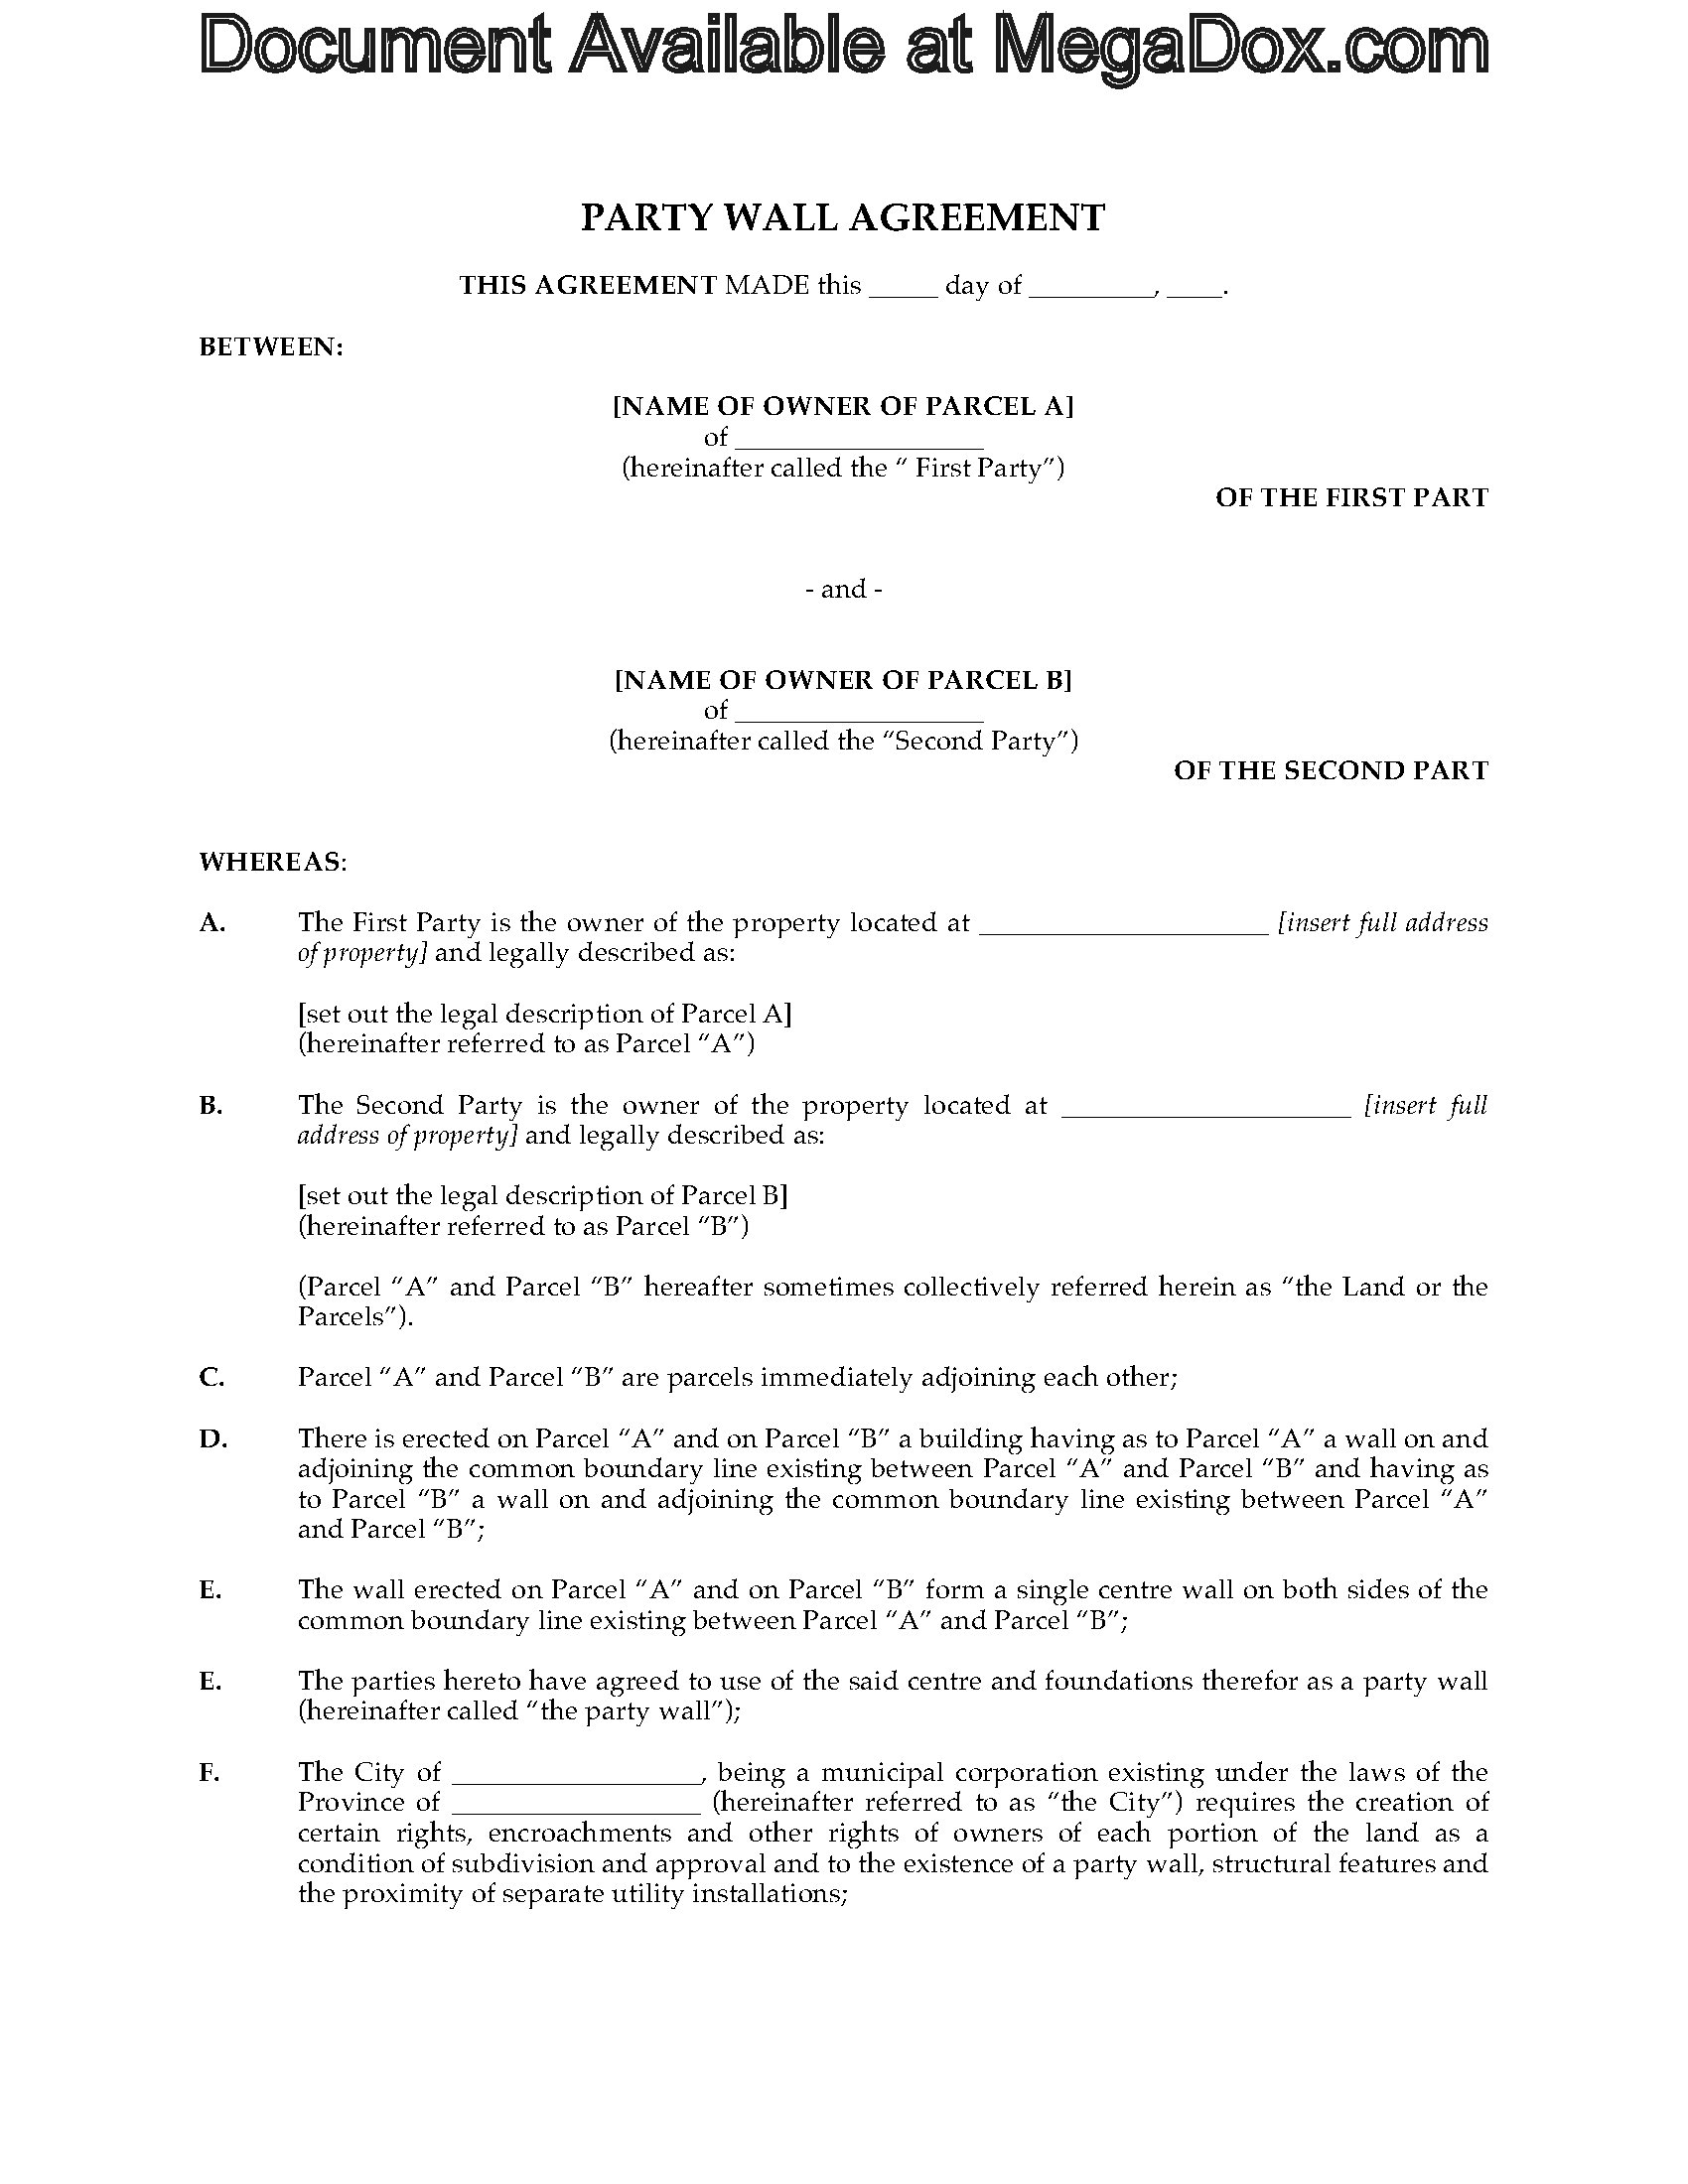 Canada Party Wall Agreement | Legal Forms and Business Templates